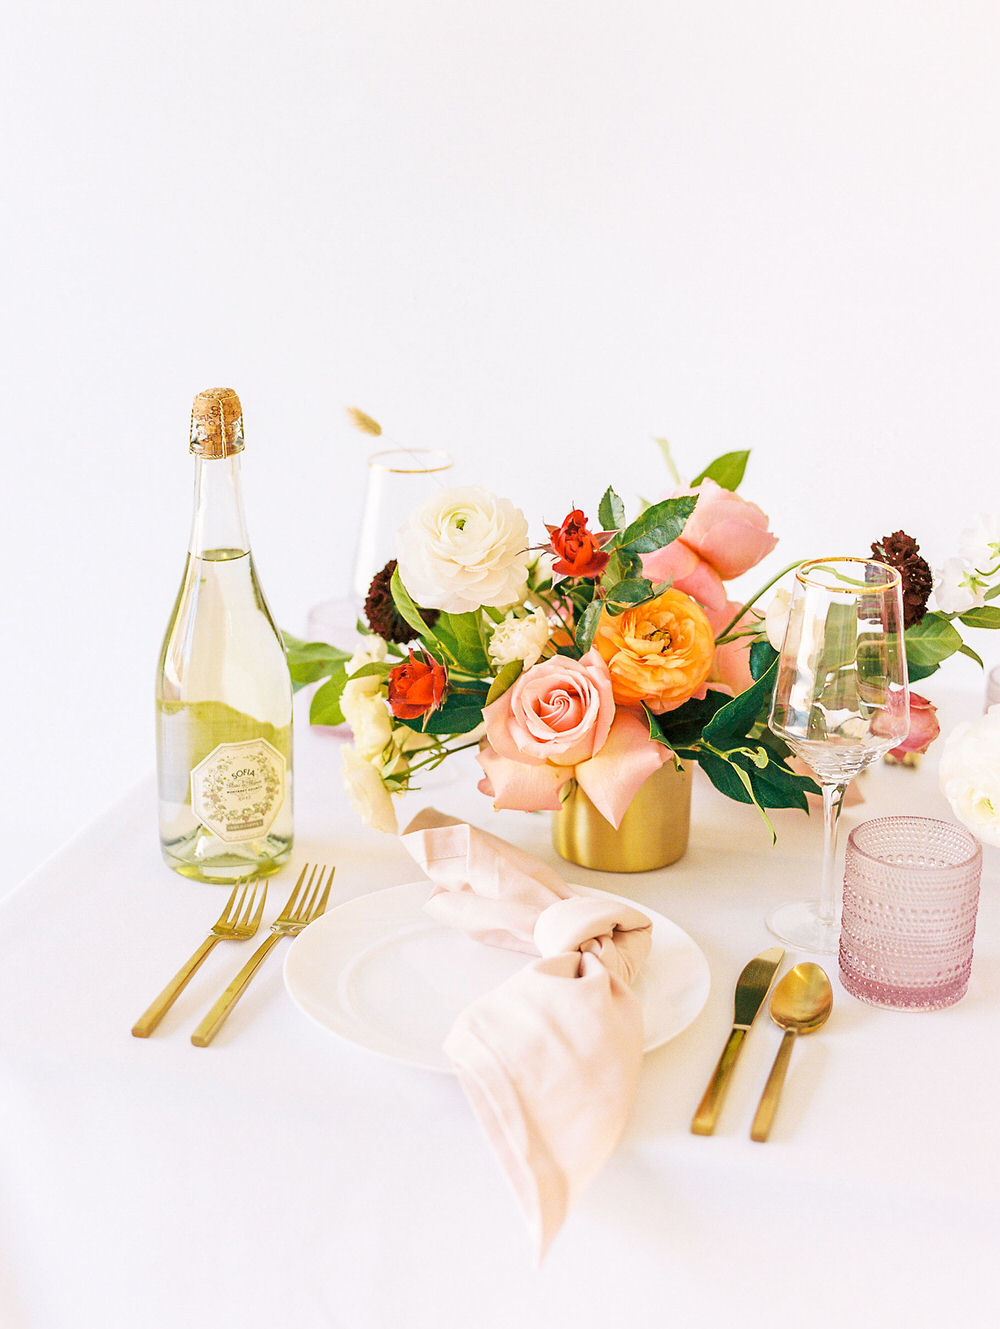 Spring Roses Fineart Weddingtablescape 15